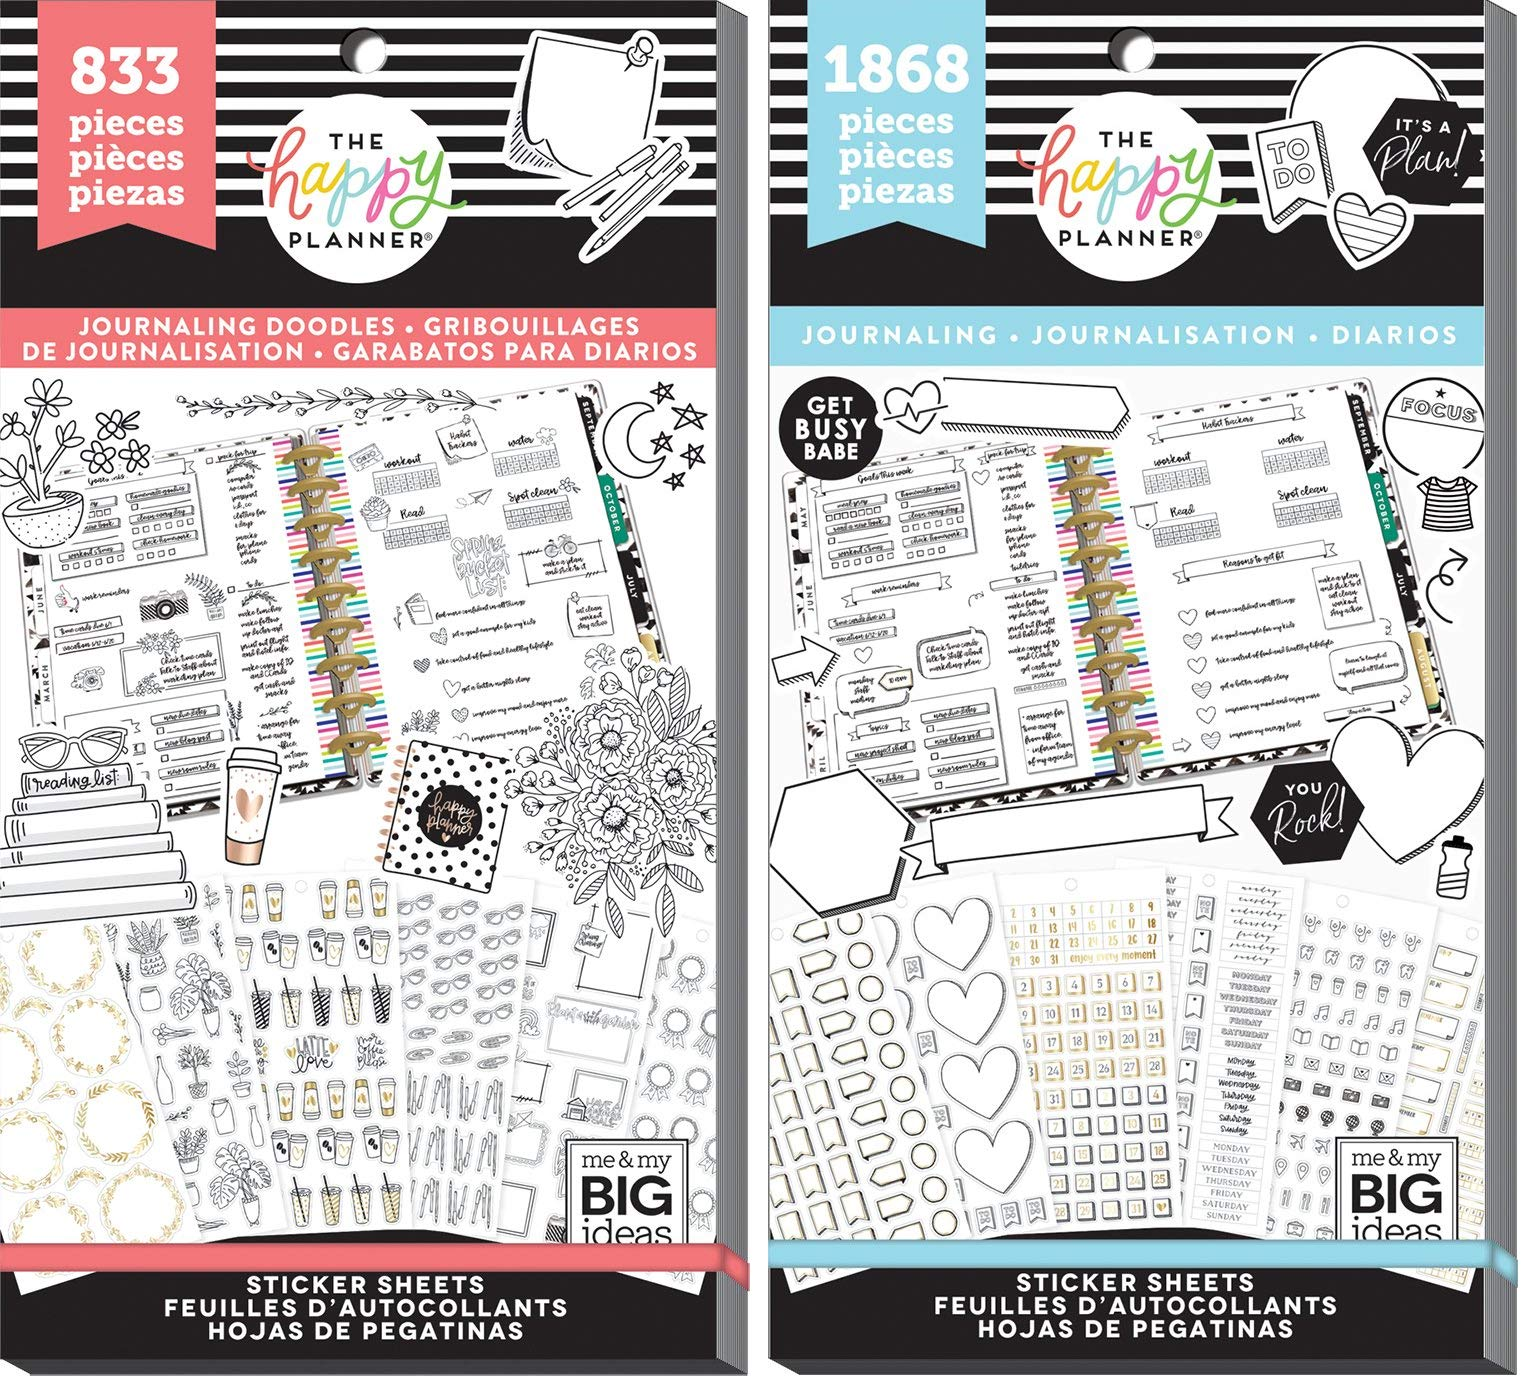 Happy Planner Journaling - Decorative Doodles (833) & Functional (1868) - 2 Sticker Books by MAMBI